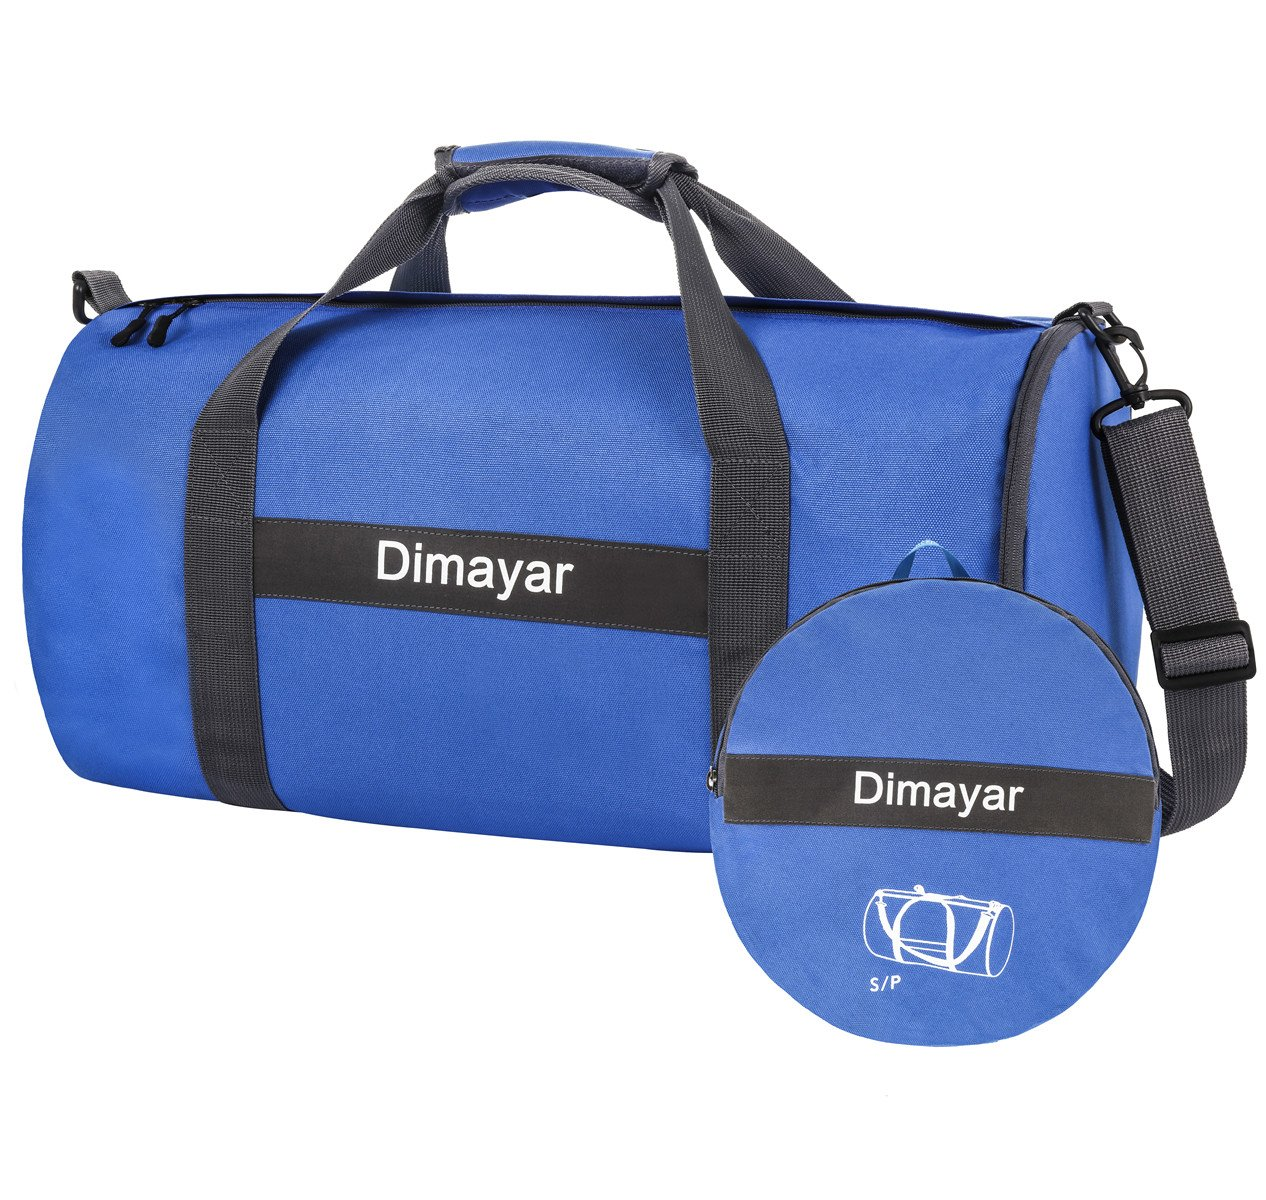 Dimayar Travel Duffle Bag For Women Men Foldable Duffel Bags For Luggage Gym Sports